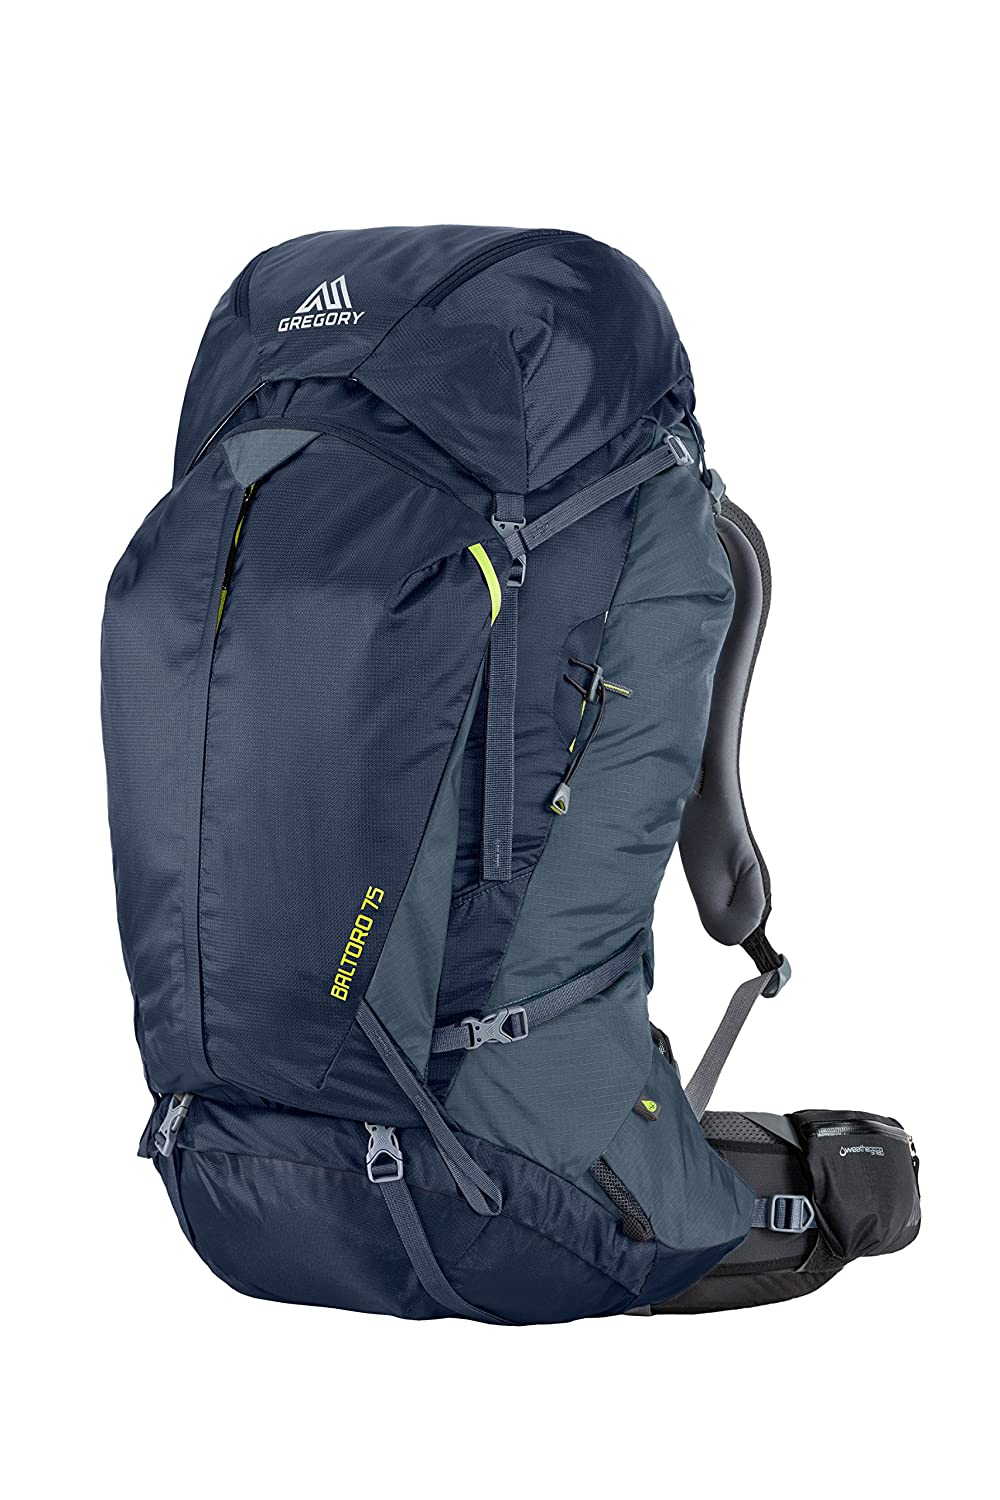 4. Gregory Mountain Products Baltoro